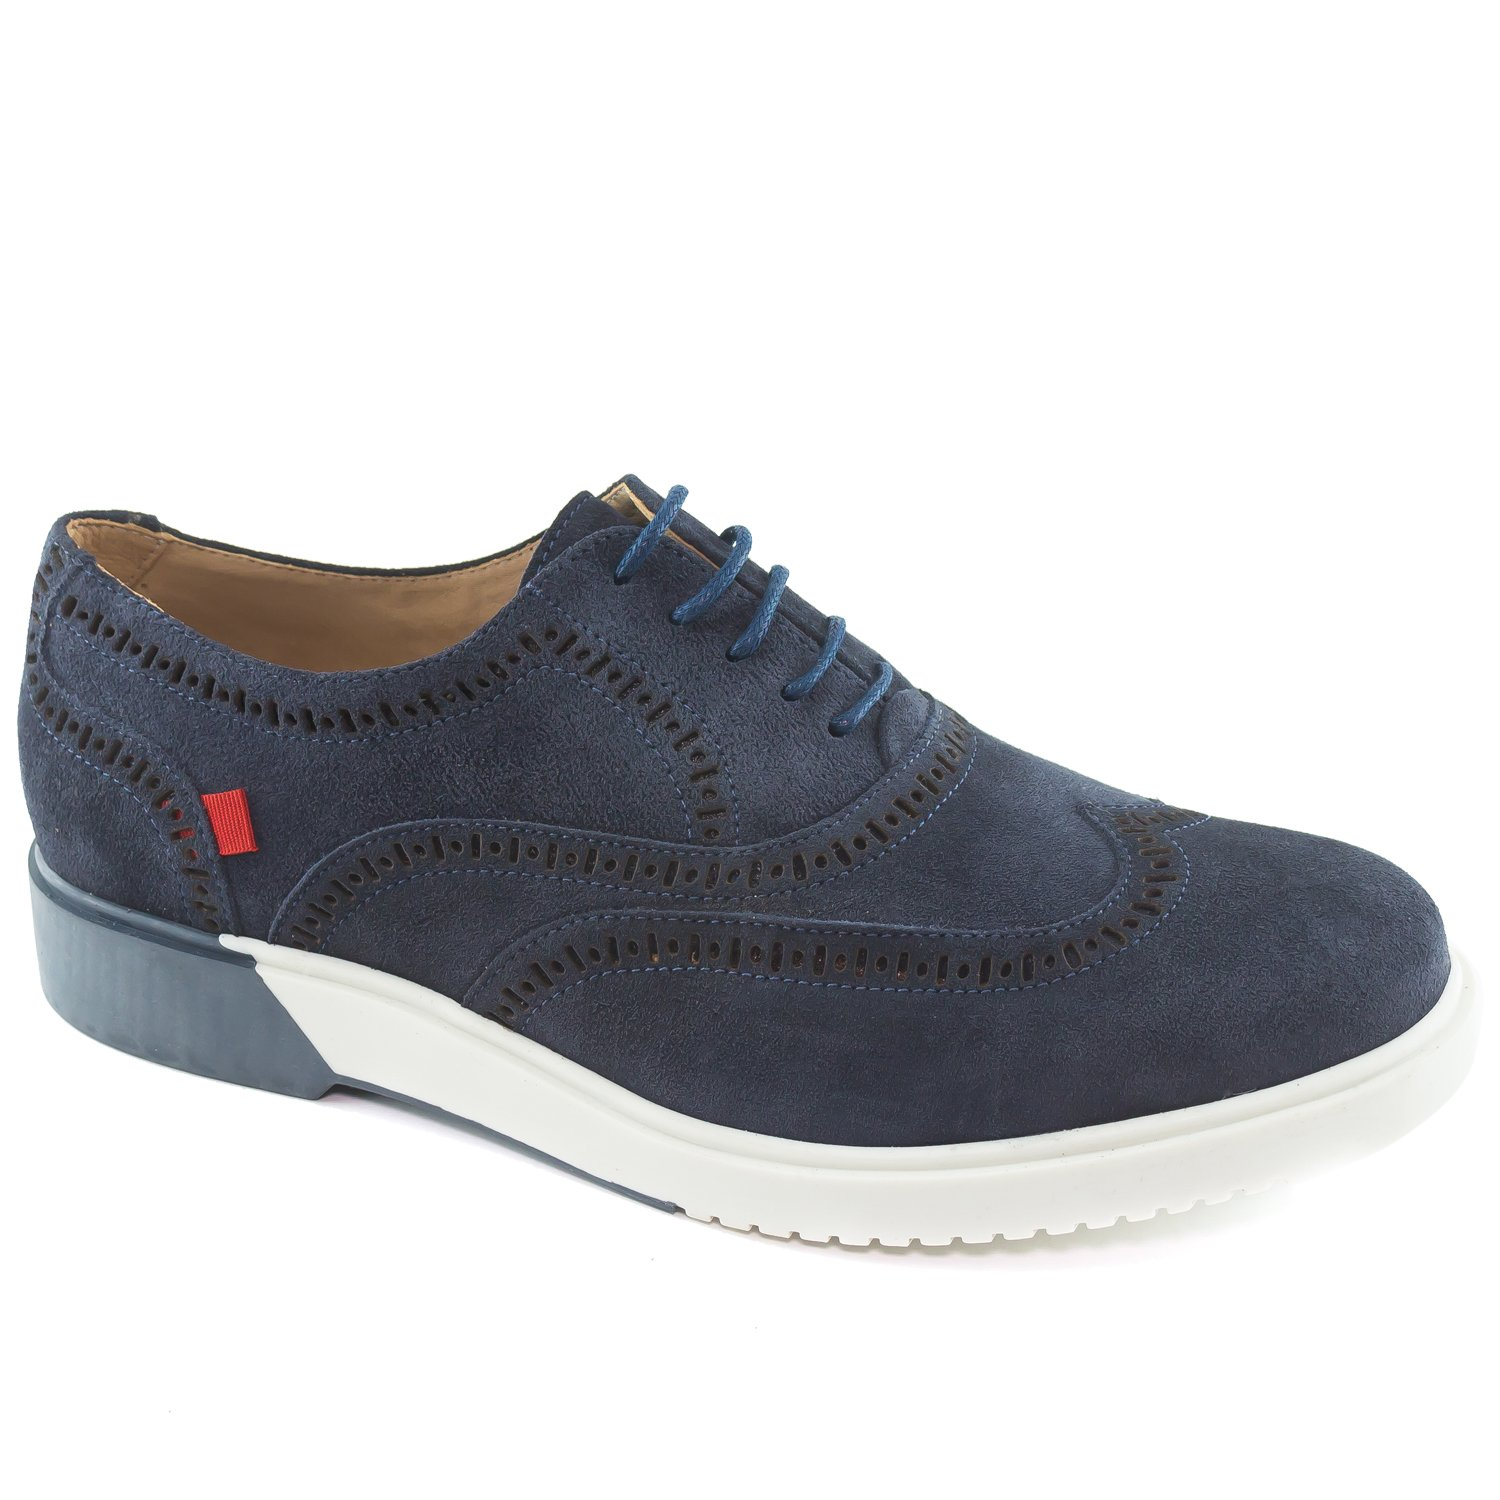 Marc Joseph New York Men's 5th Ave 5th Ave Navy Suede Oxford Shoes 12